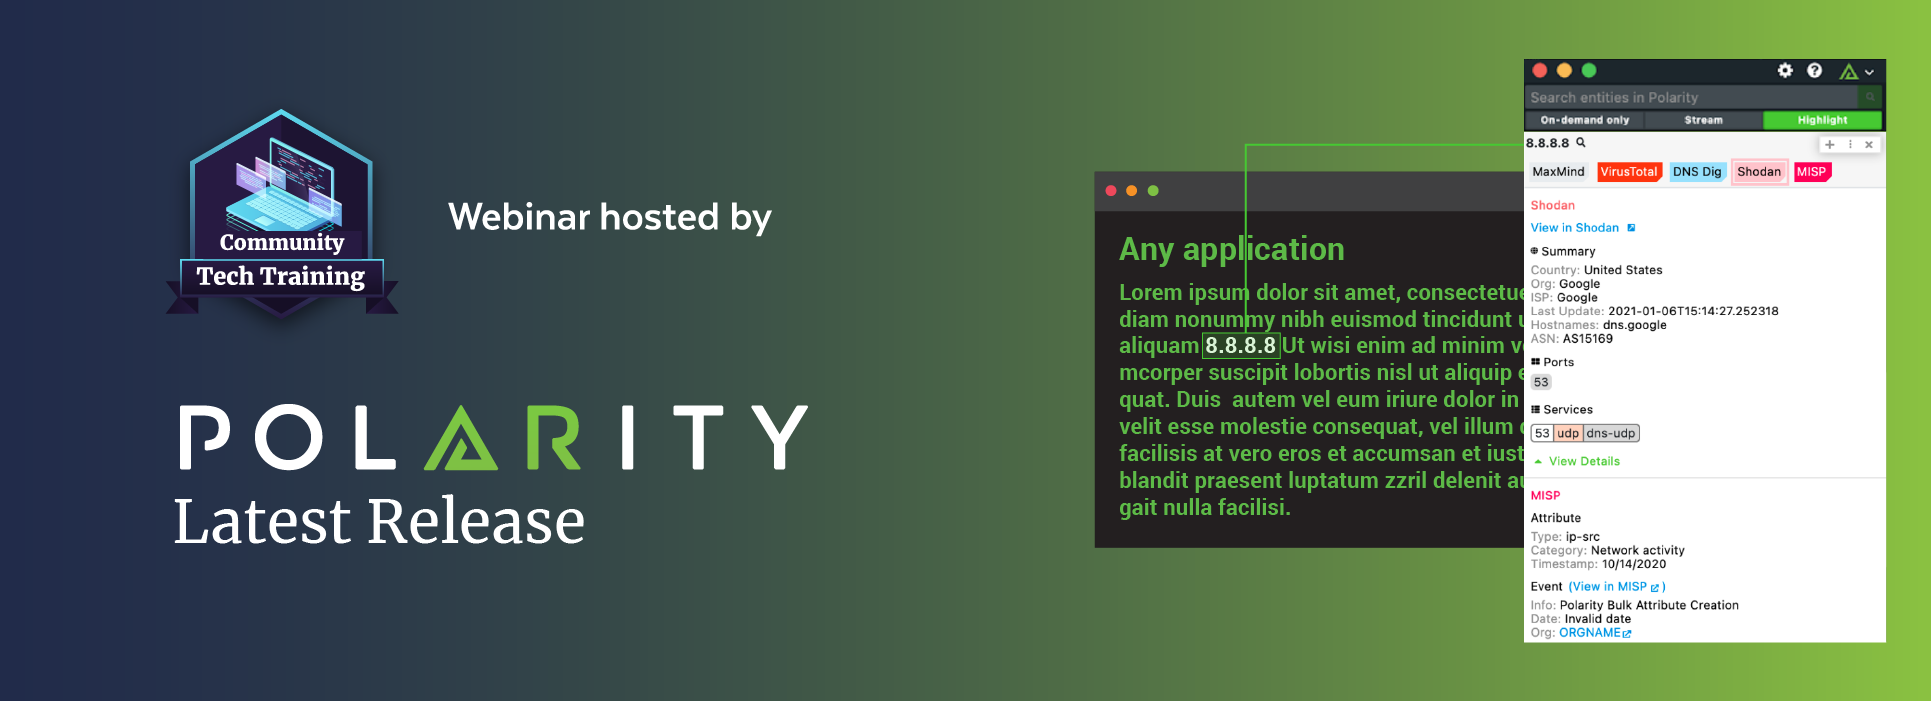 Community Tech Training: Polarity's Latest Releasecover image